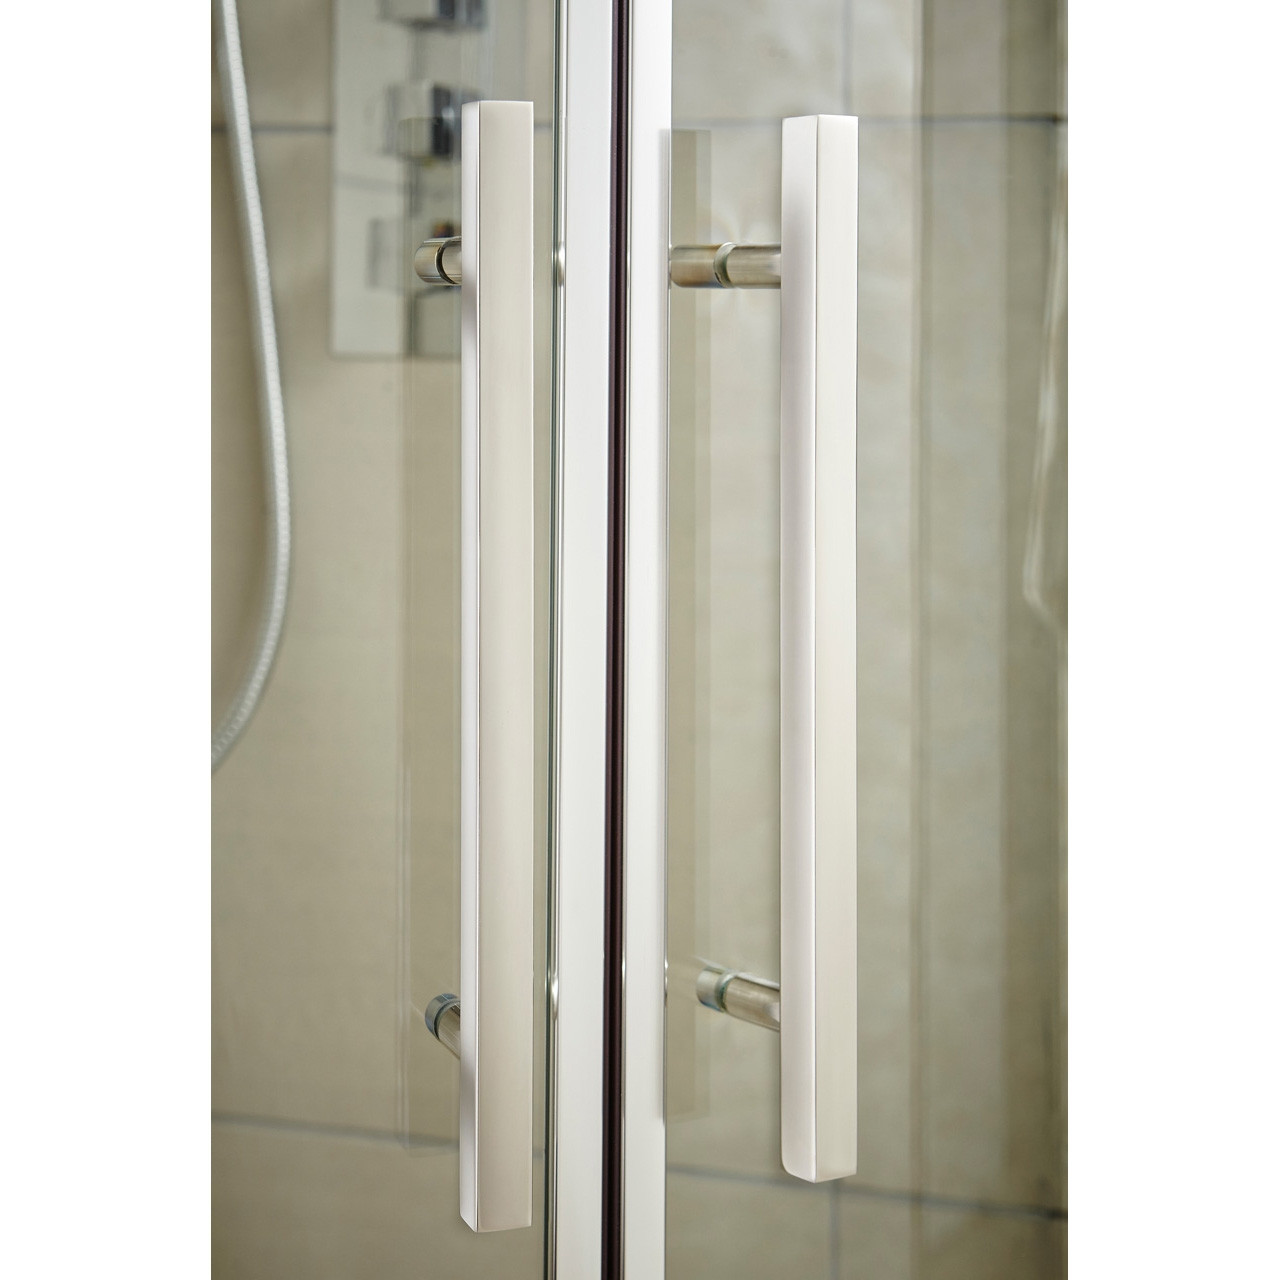 Premier 800mm Hinged Door 8mm Thick - MH80-E8